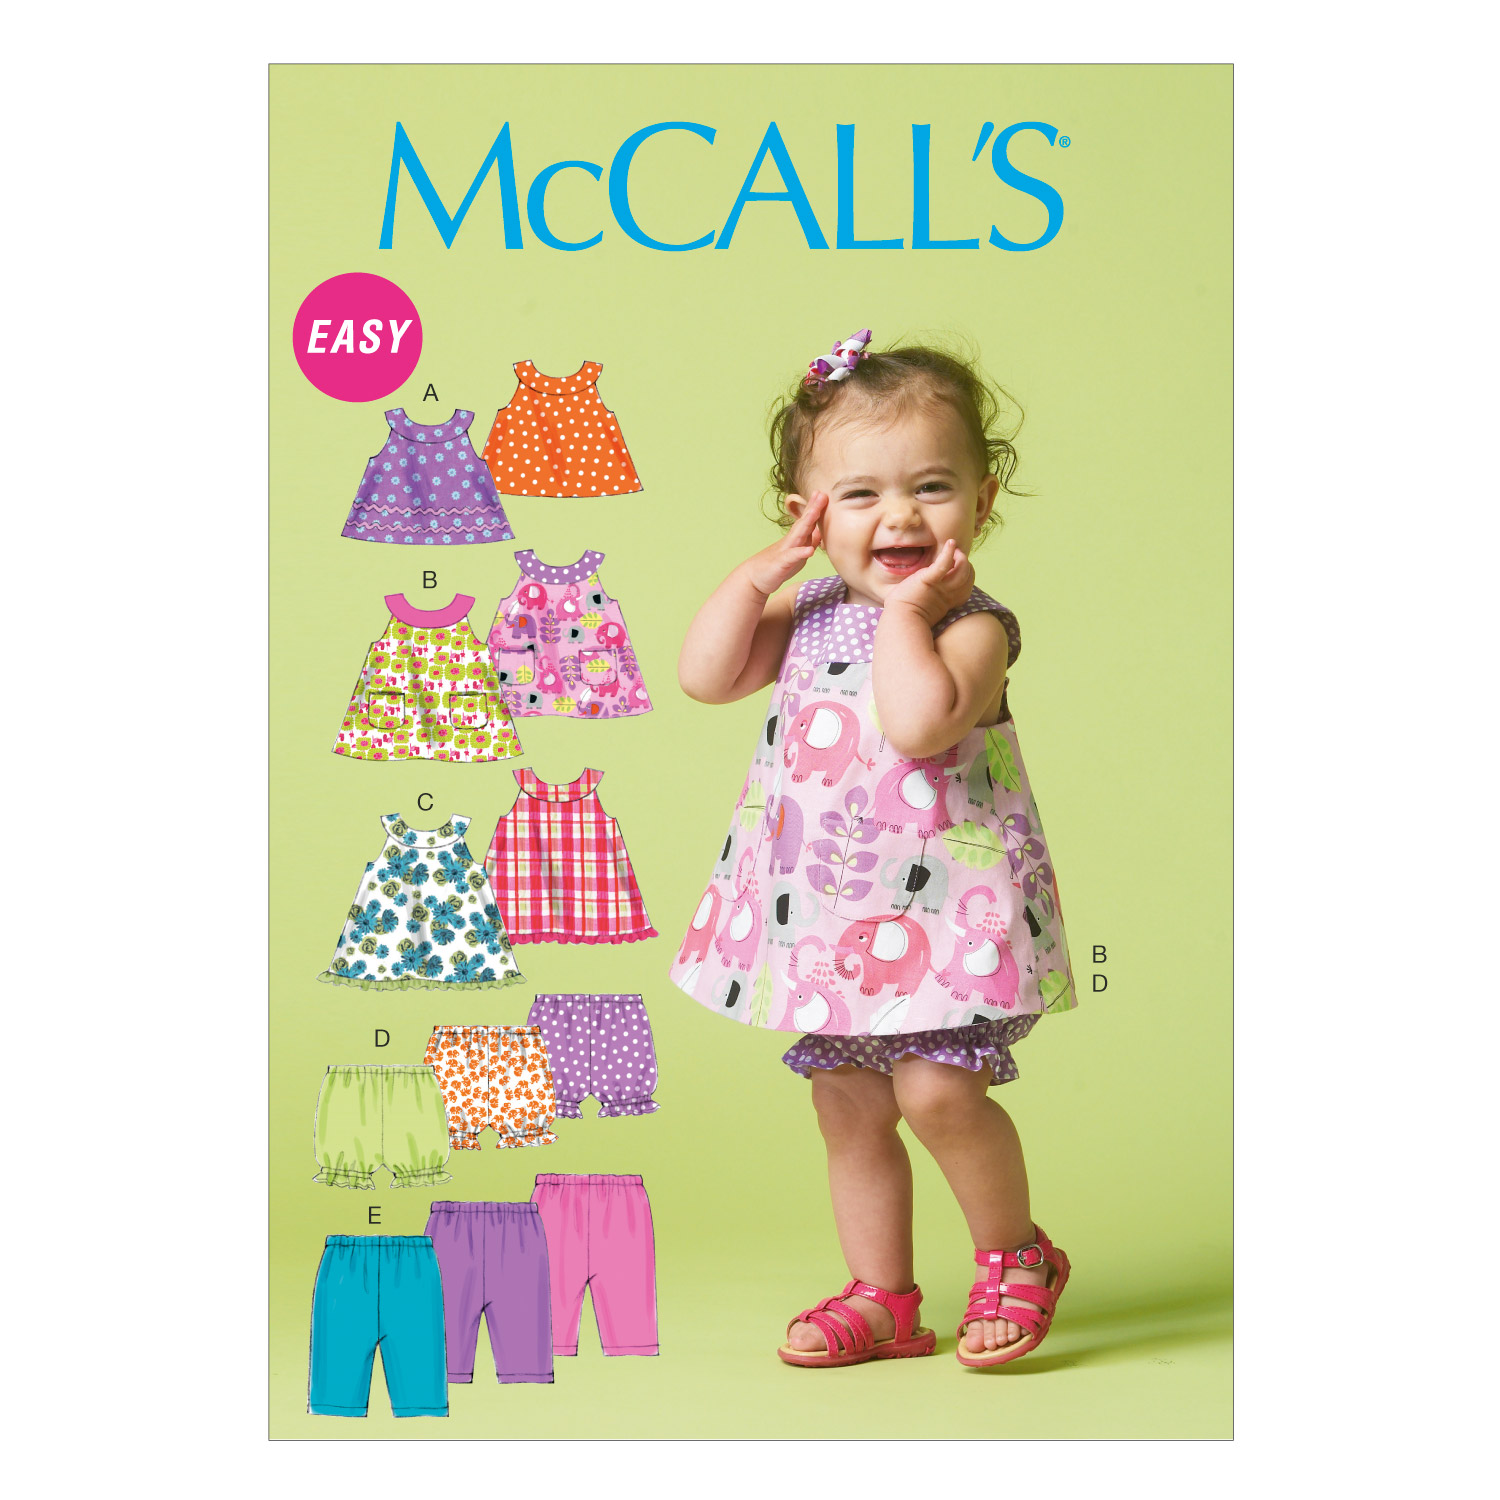 McCall's Infants' Reversible Top Dresses; Bloomers and Pants Pattern M6912 Size YA5 by Kwik Sew in USA